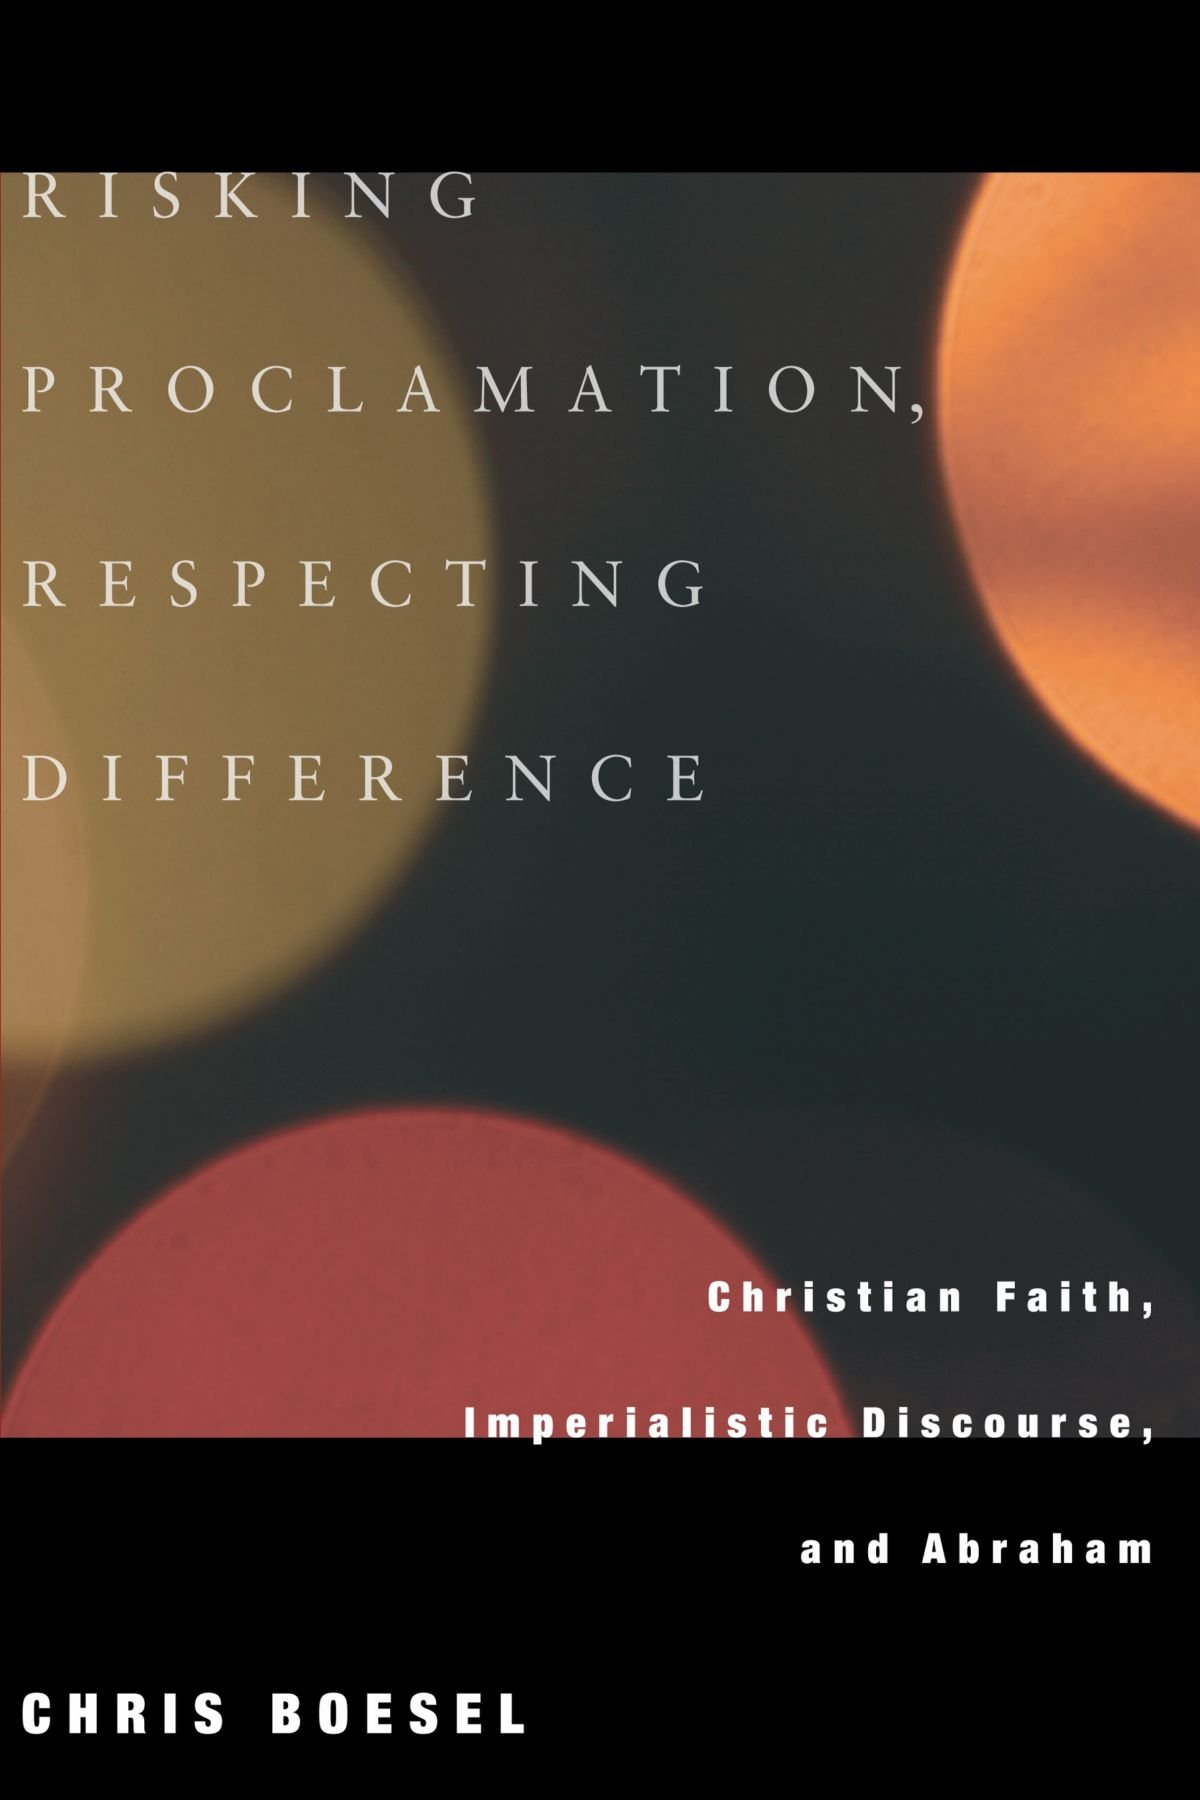 Download Risking Proclamation, Respecting Difference: Christian Faith, Imperialistic Discourse, and Abraham ebook